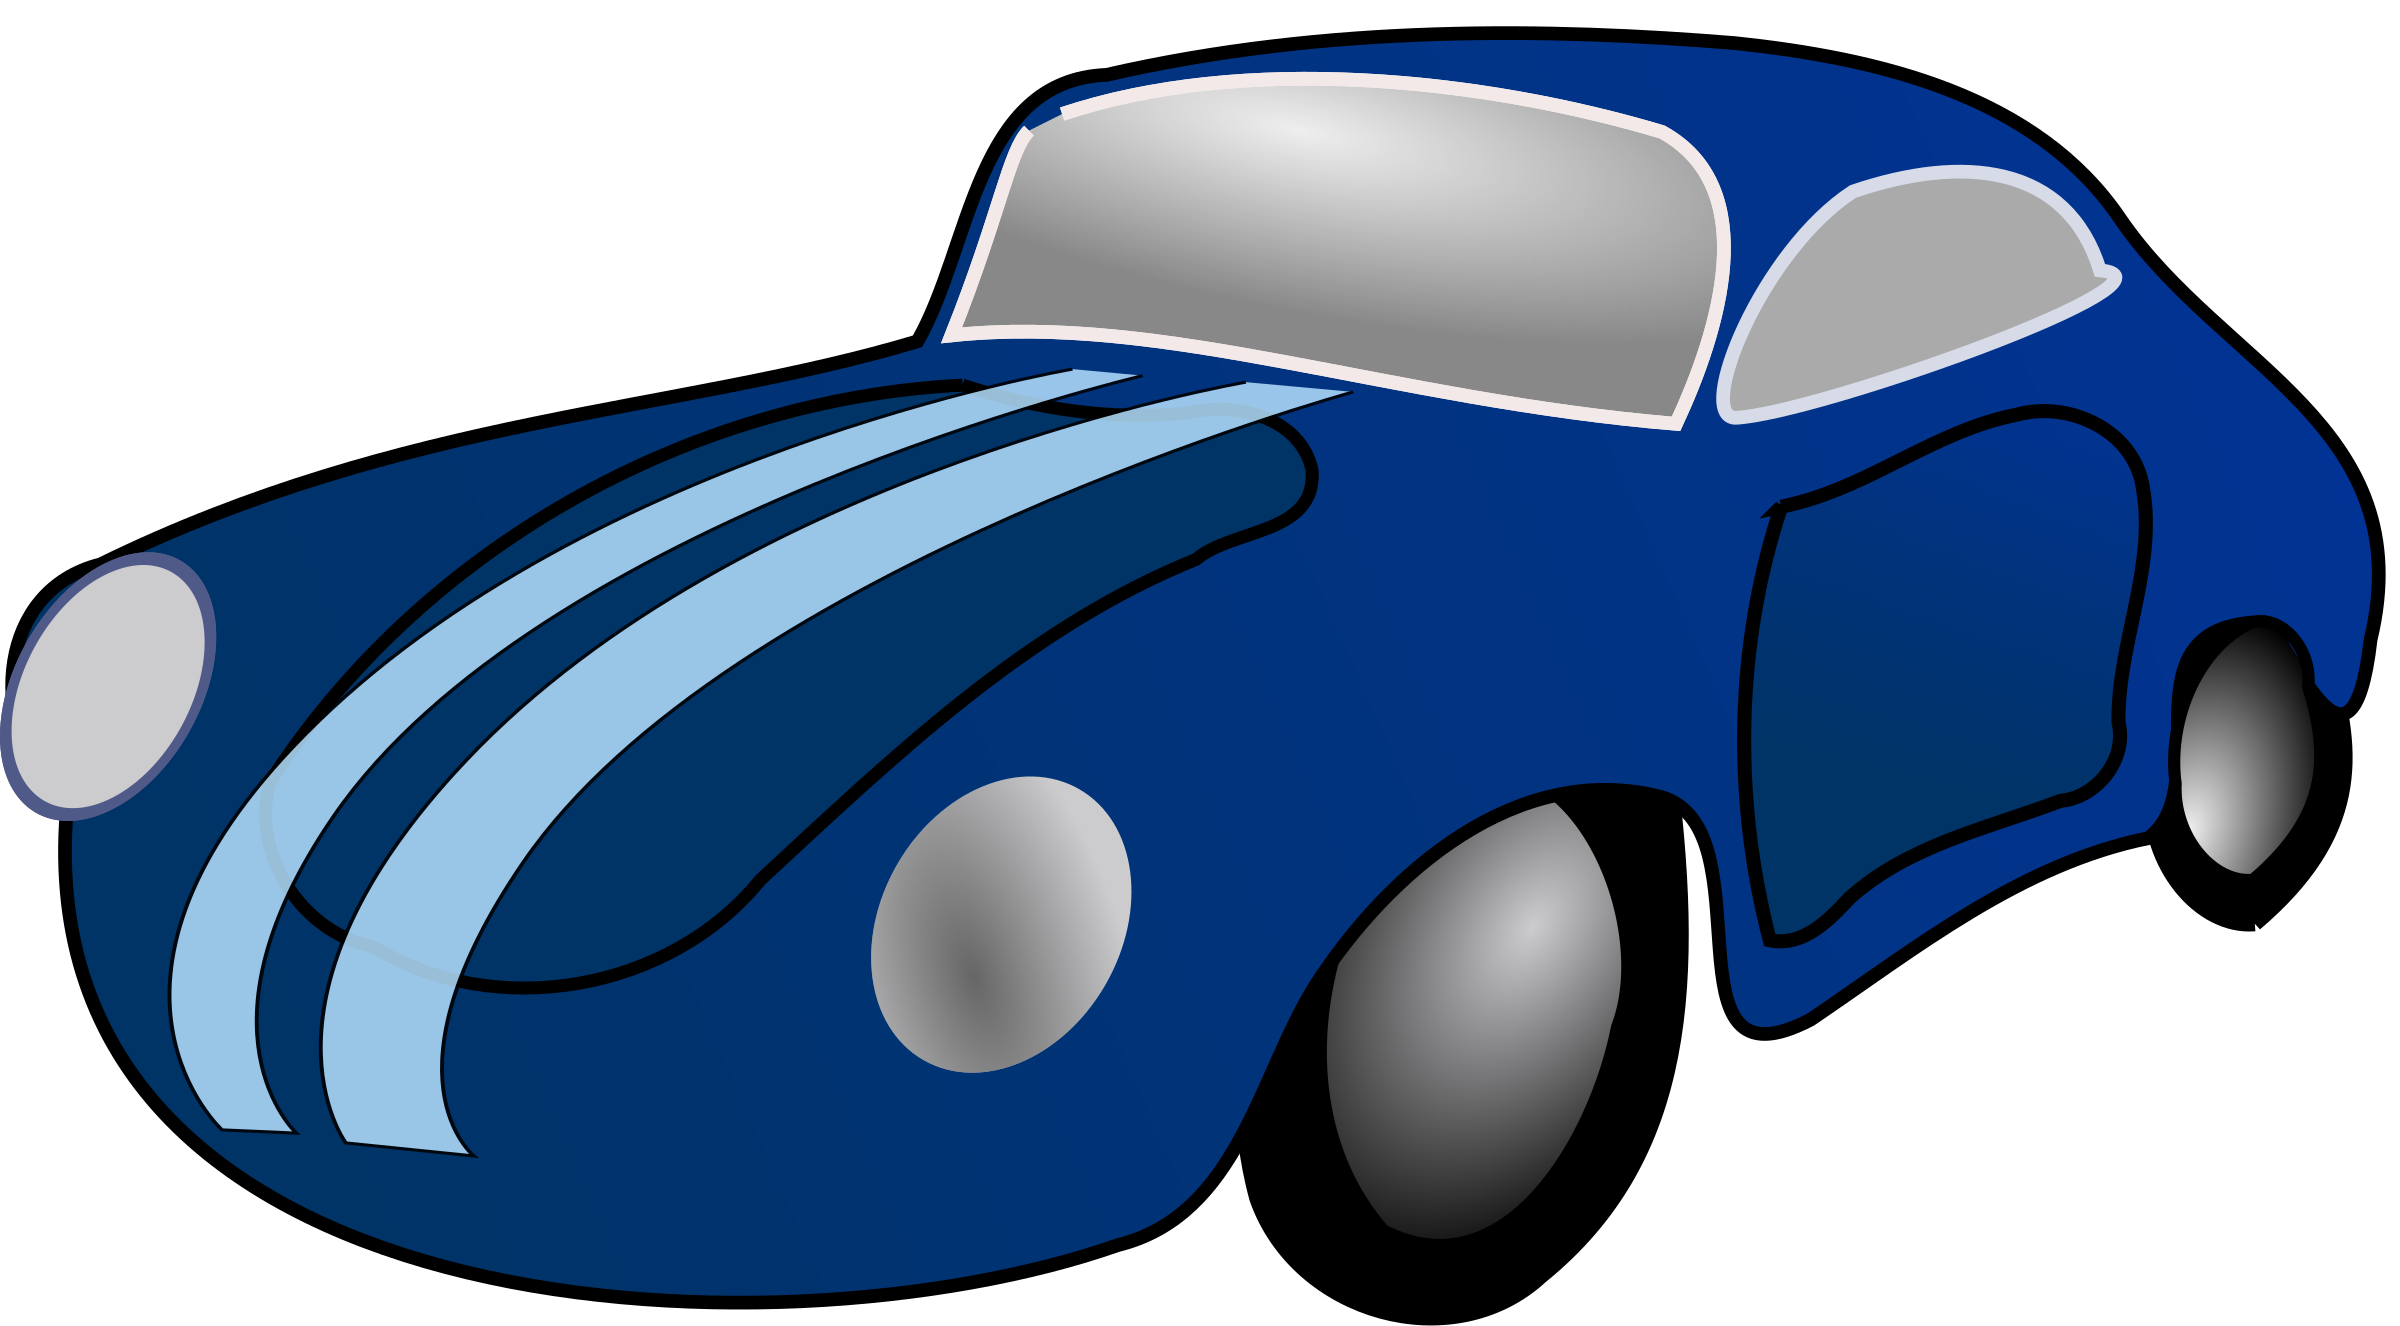 Car png vector. File draw wikimedia commons